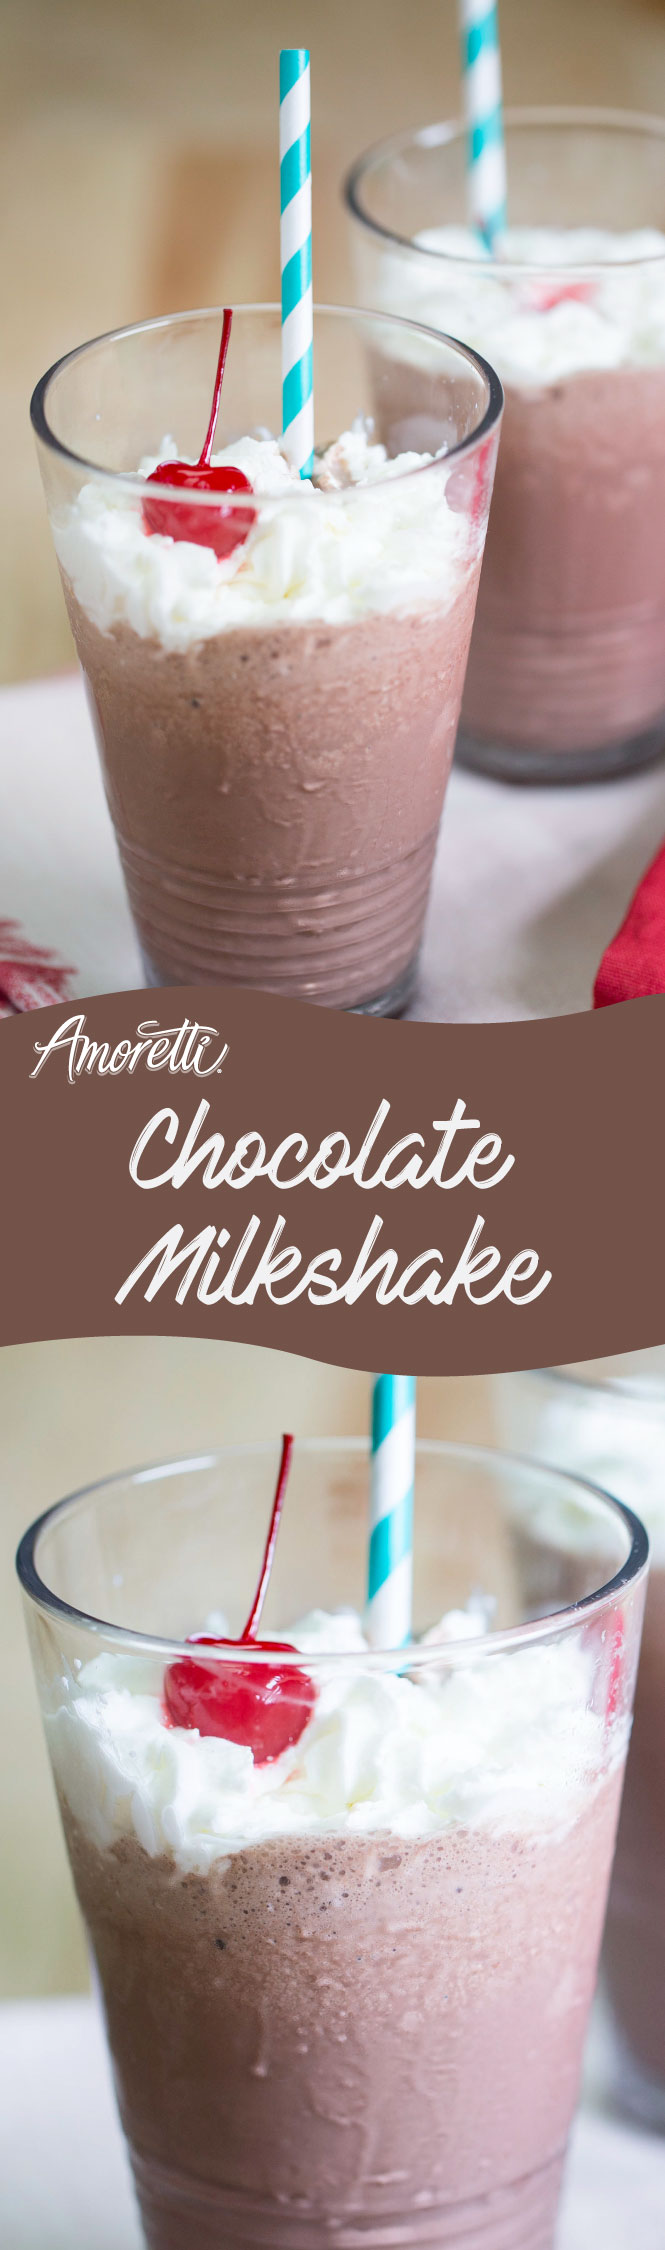 Make you kiddos a chocolate milkshake with rich vanilla flavor!